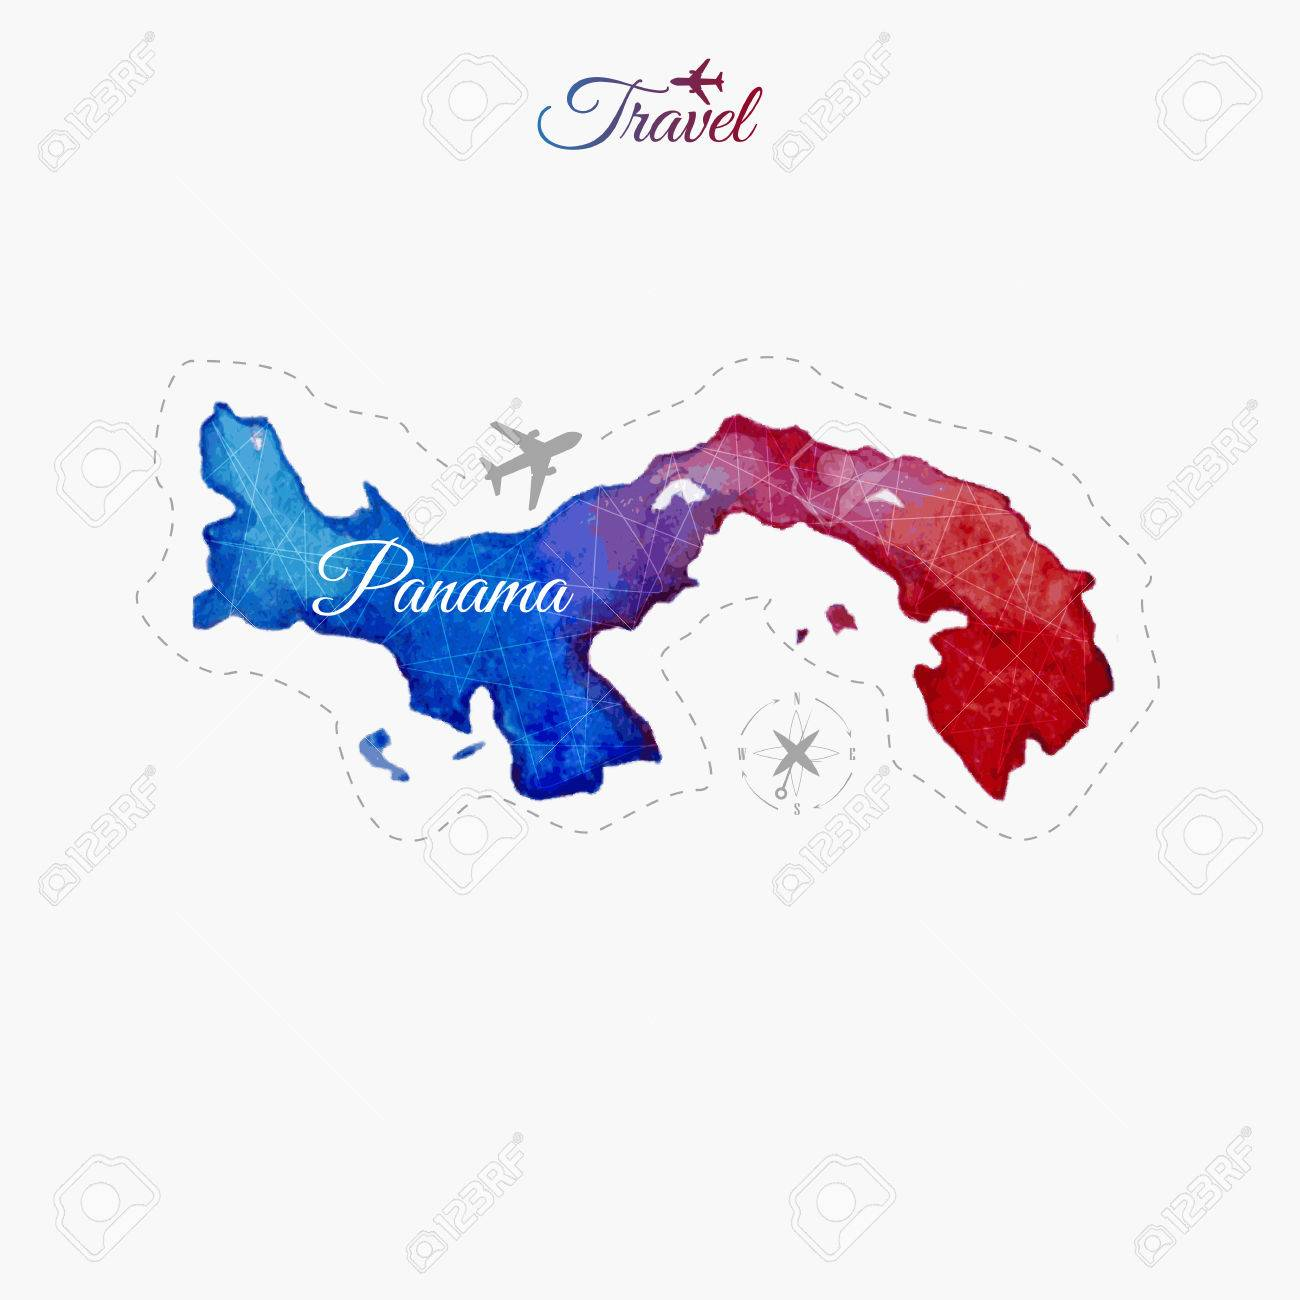 Travel Around The World. Panama. Watercolor Map Royalty Free ...